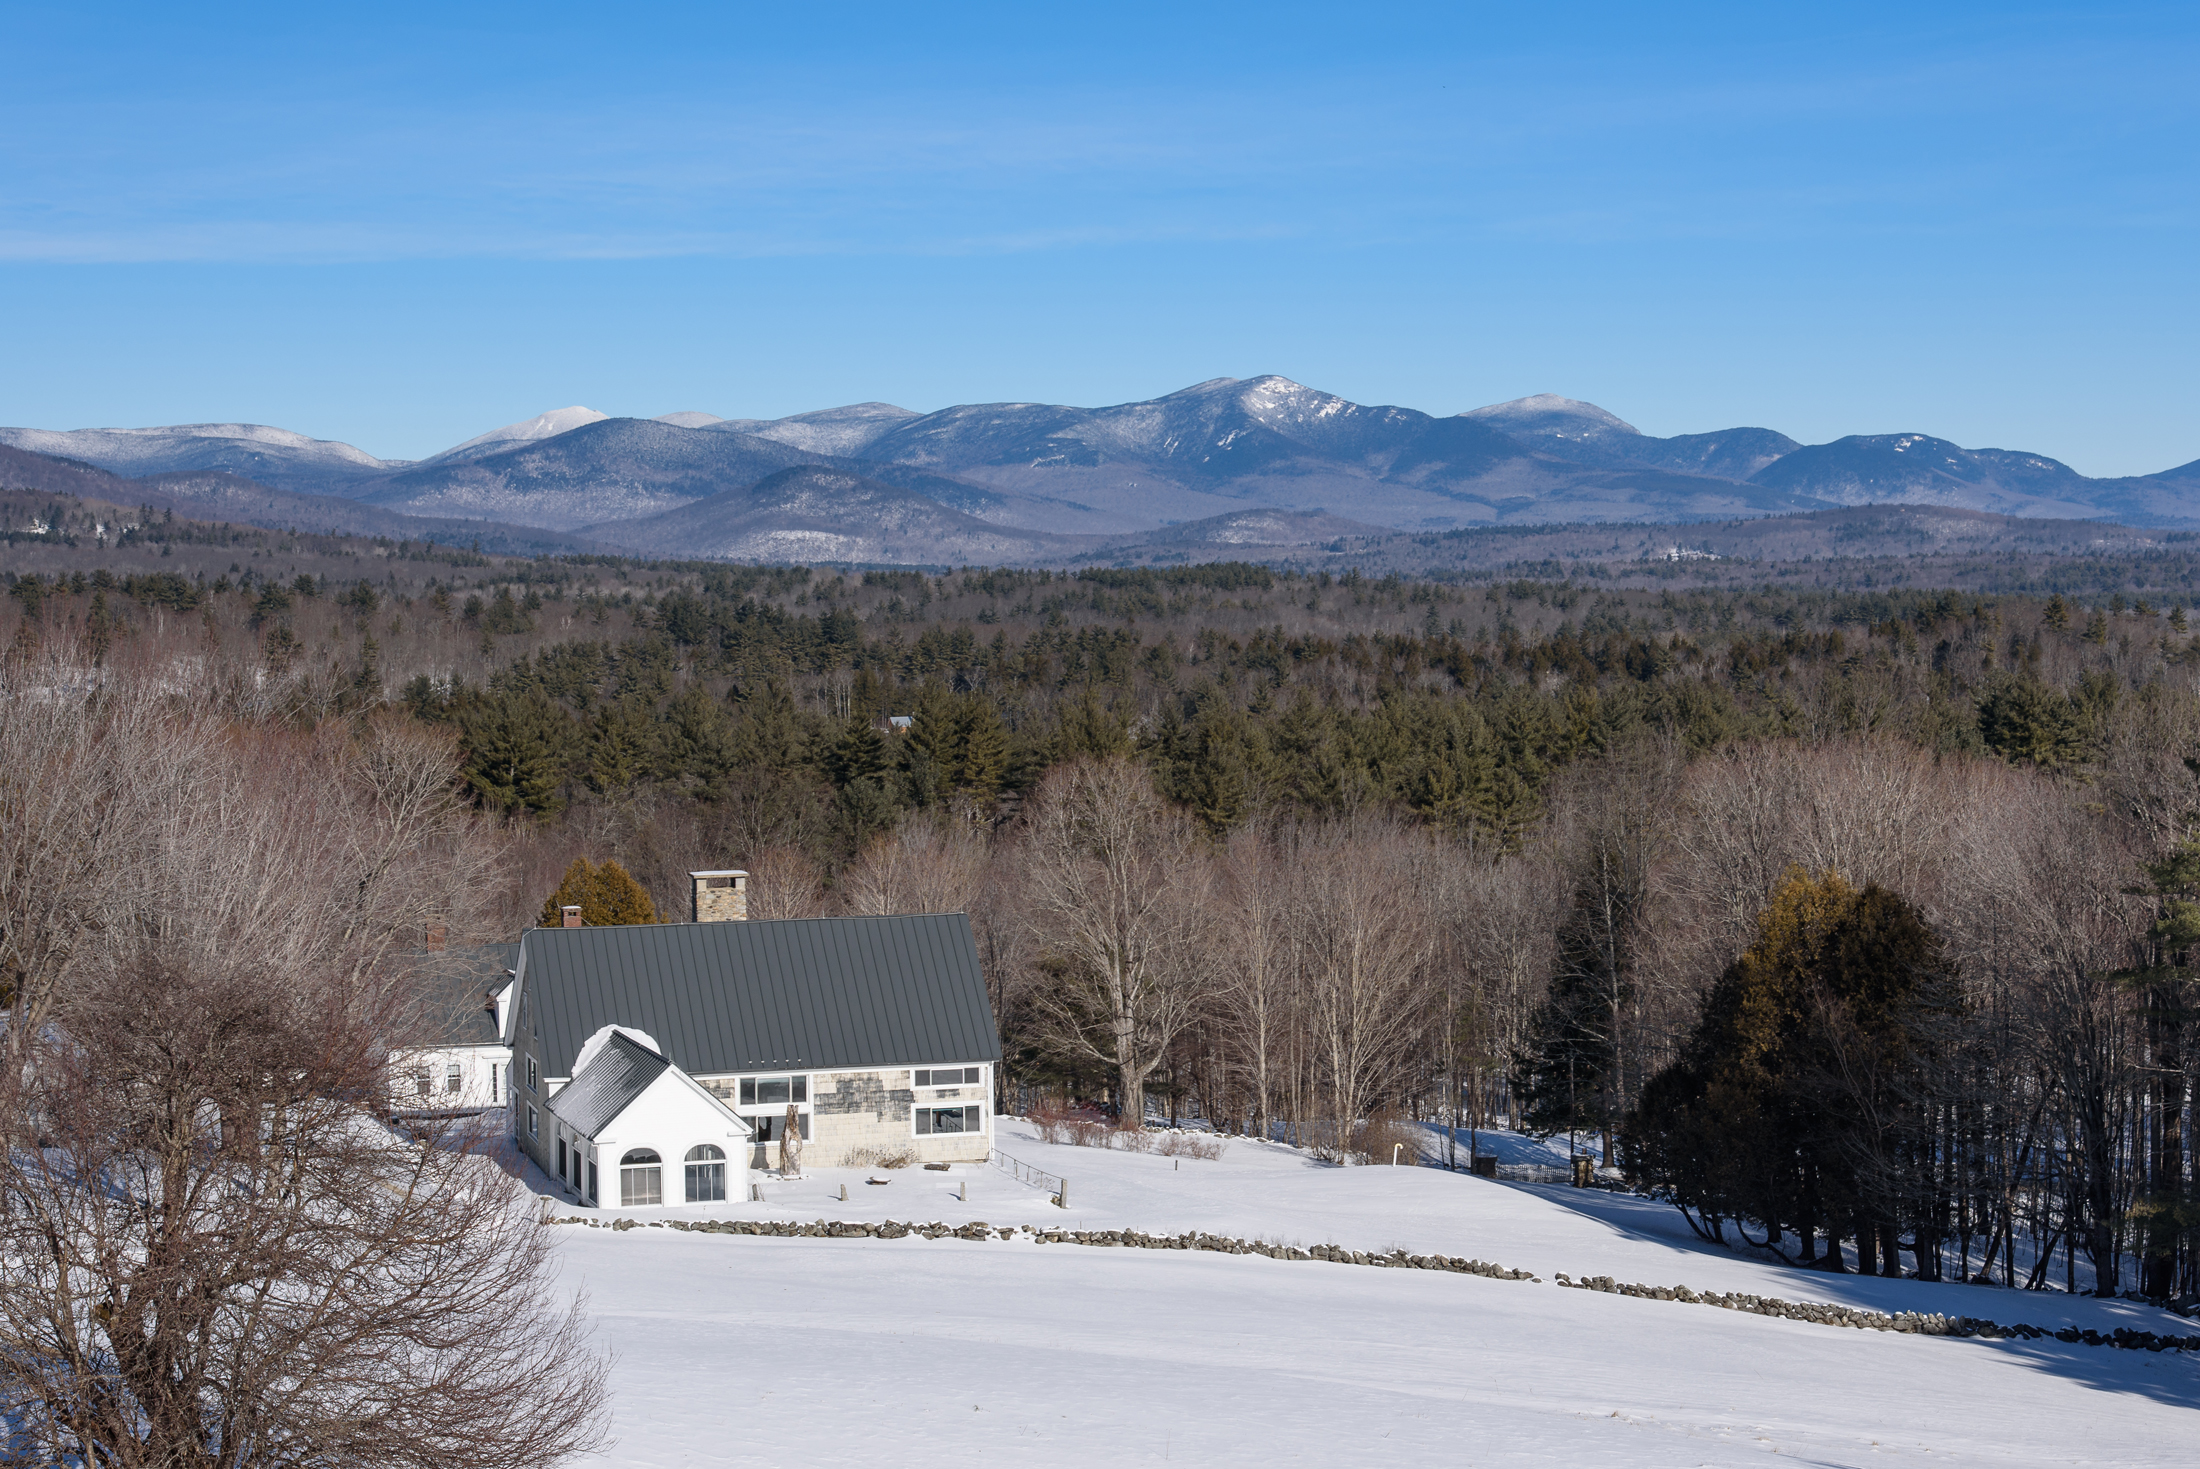 Single Family Home for Sale at 171 157 Range Rd, Sandwich Sandwich, New Hampshire, 03227 United States